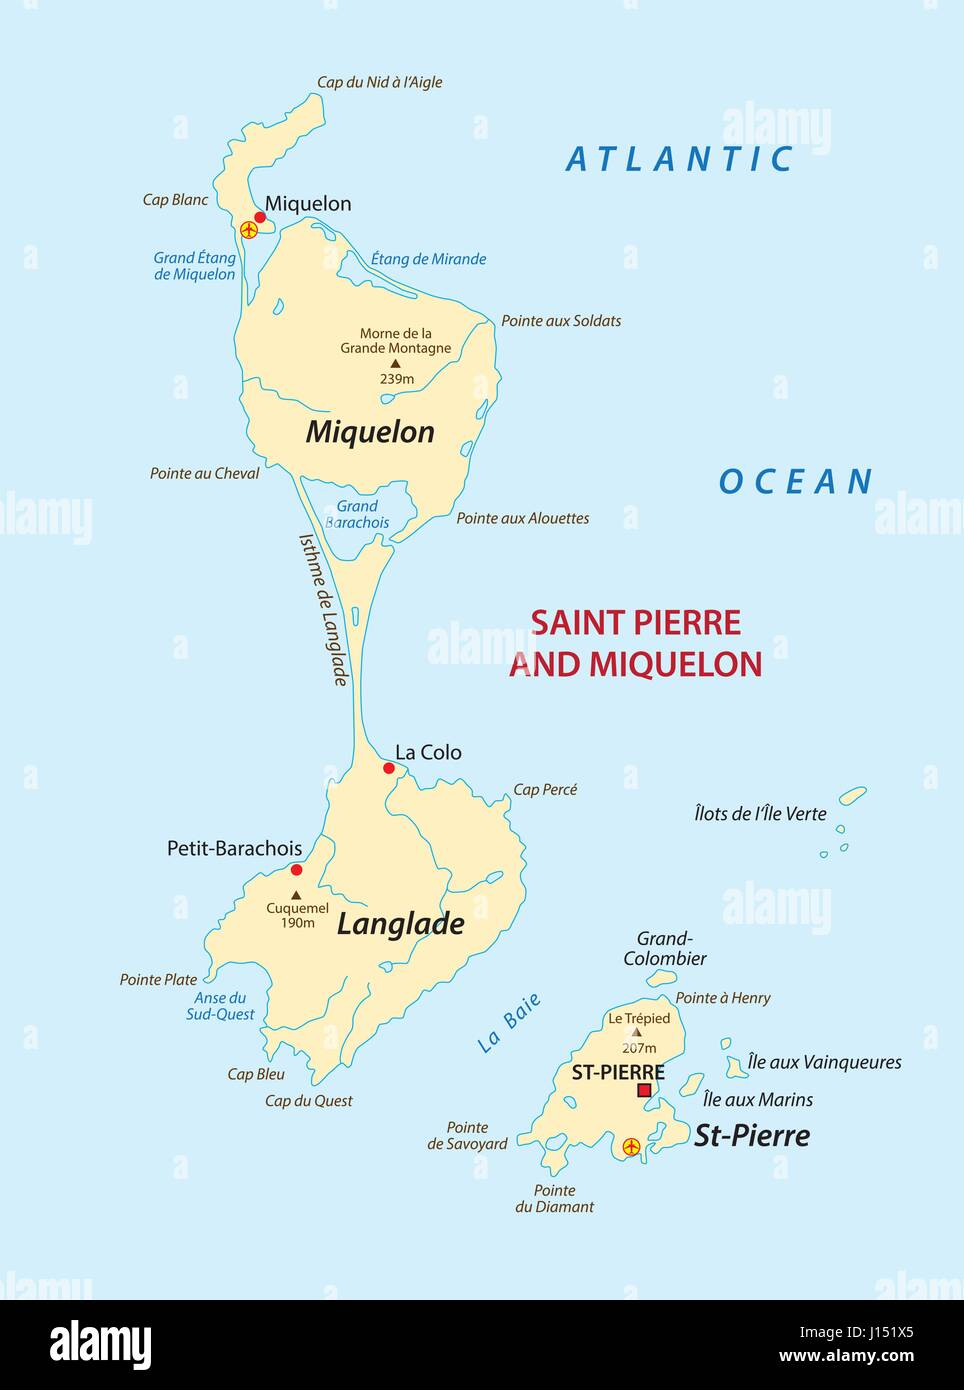 saint pierre and miquelon map Stock Vector Art Illustration